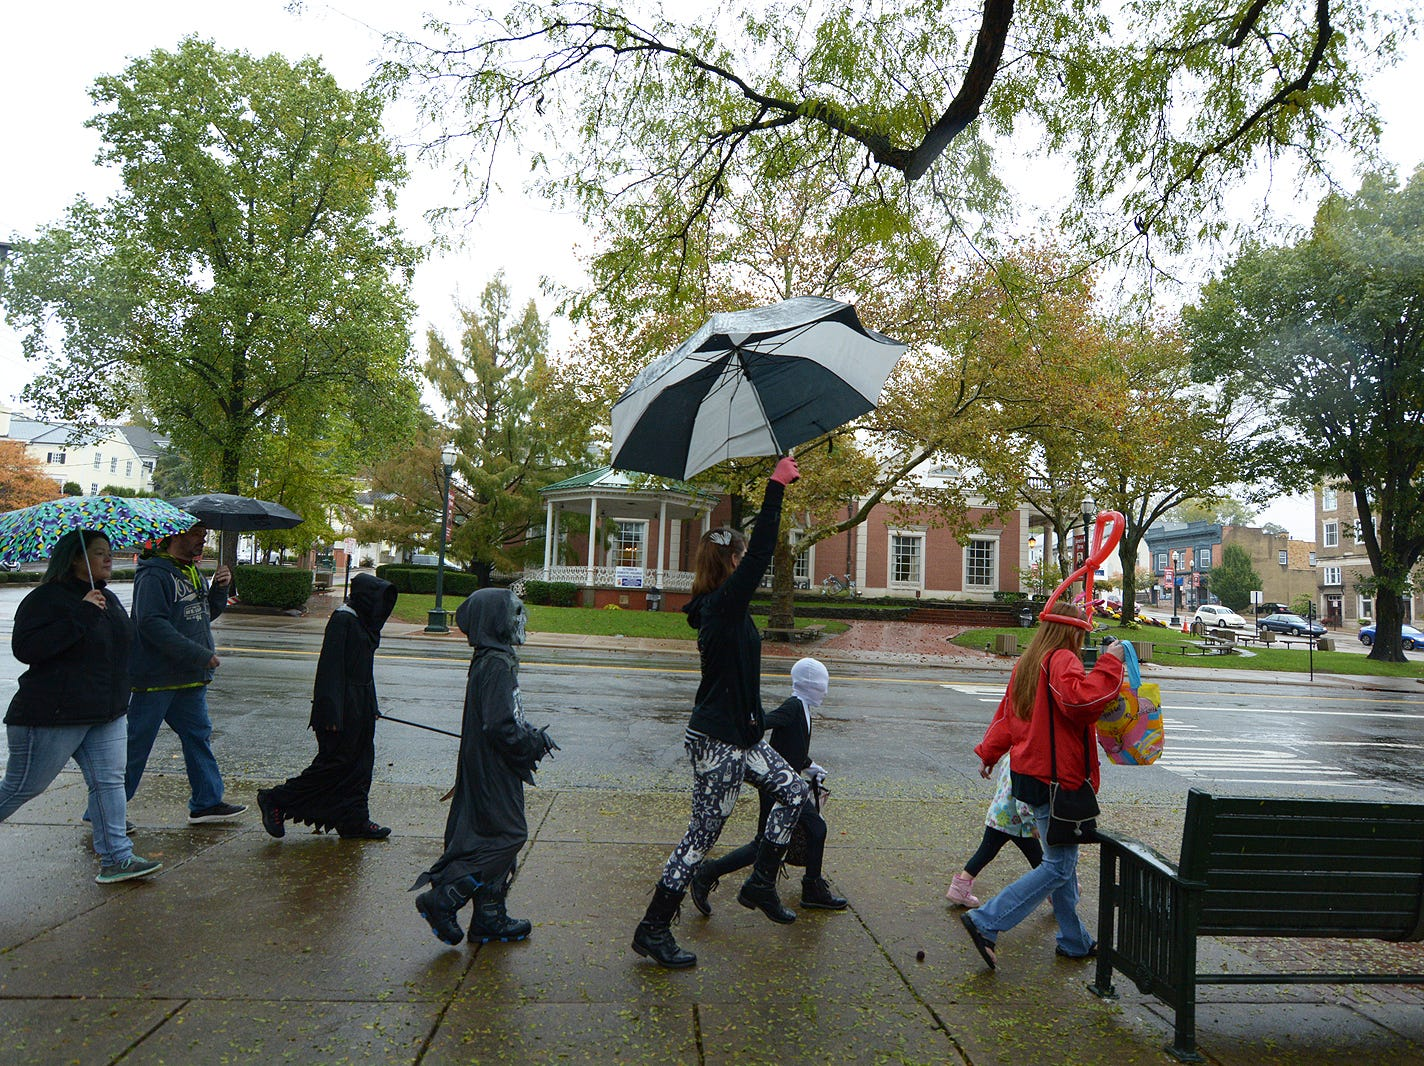 People march in the rain Saturday, Oct. 27, 2018, during the Lancaster Halloween Parade in downtown Lancaster.